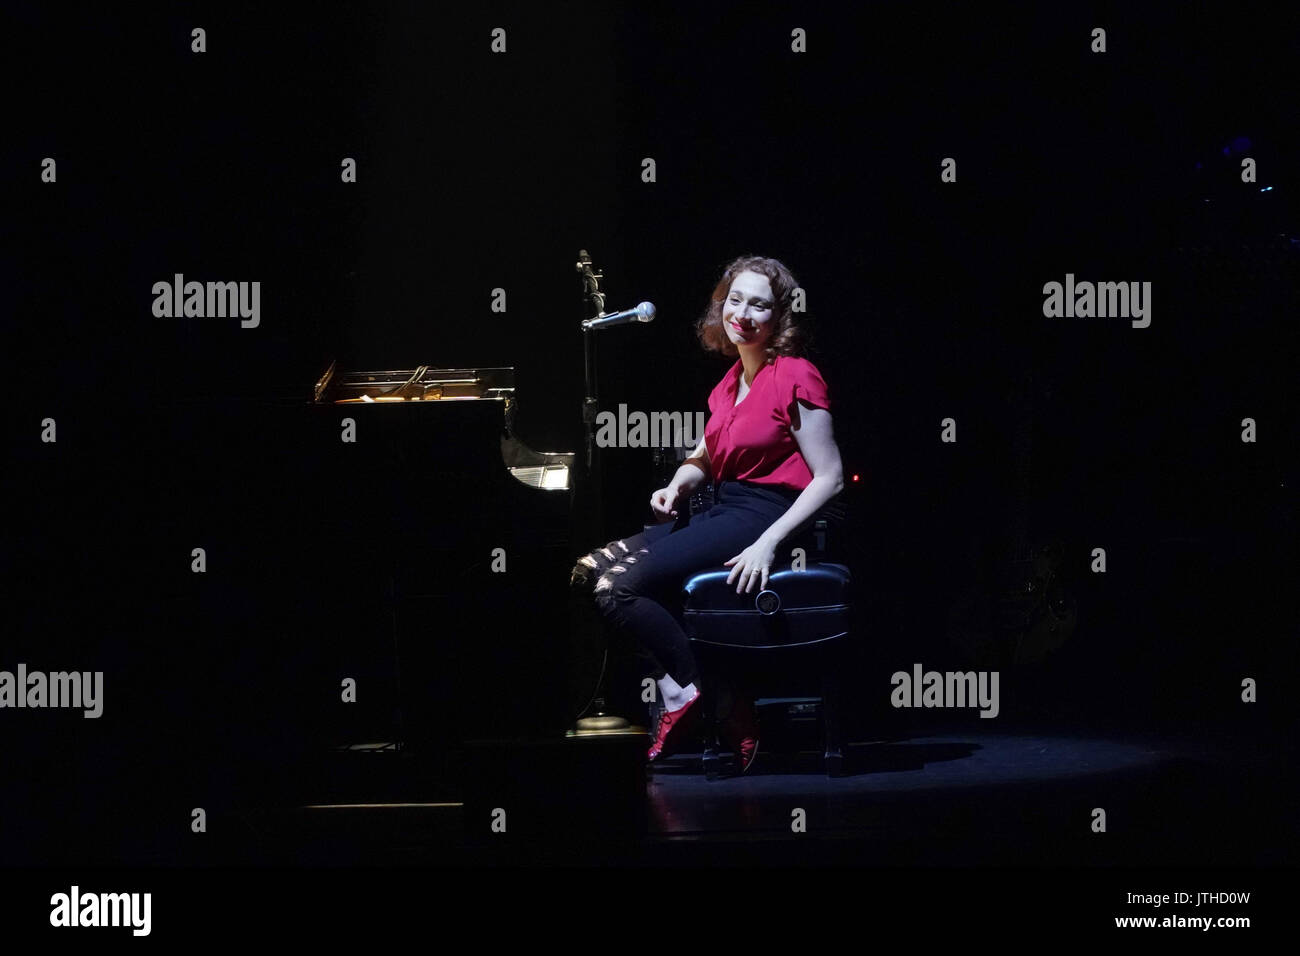 London, UK. 09th Aug, 2017. Regina Spektor performing live on stage at Hammersmith Eventim Apollo in London. Photo date: Wednesday, August 9, 2017. Photo credit should read Credit: Roger Garfield/Alamy Live News - Stock Image